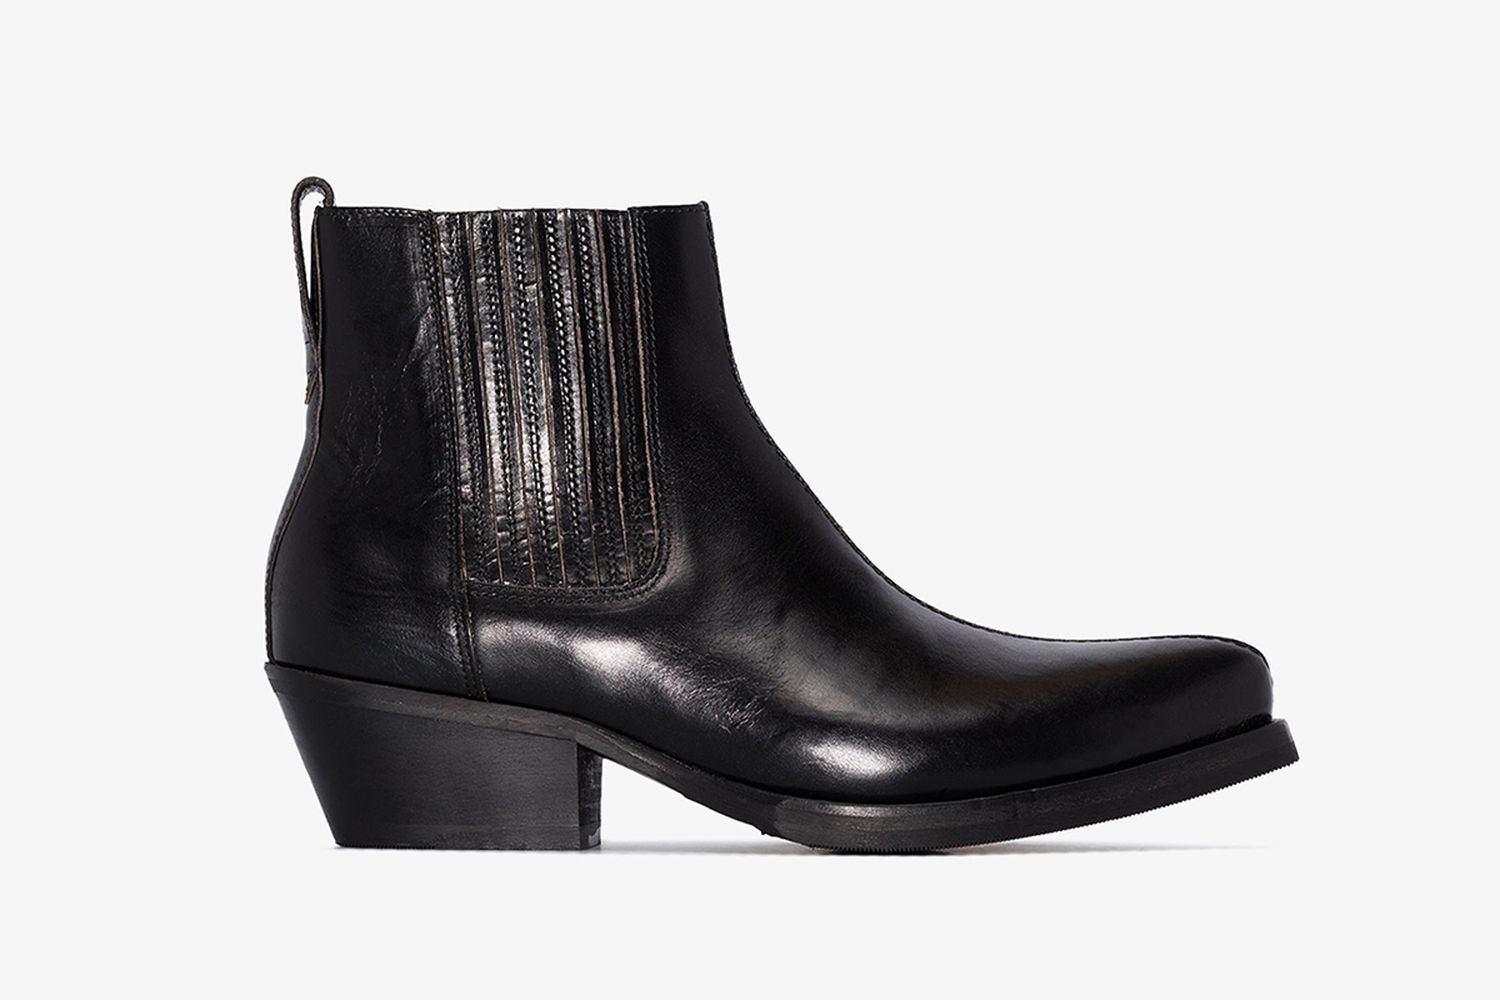 Worn-In Centre Leather Boots